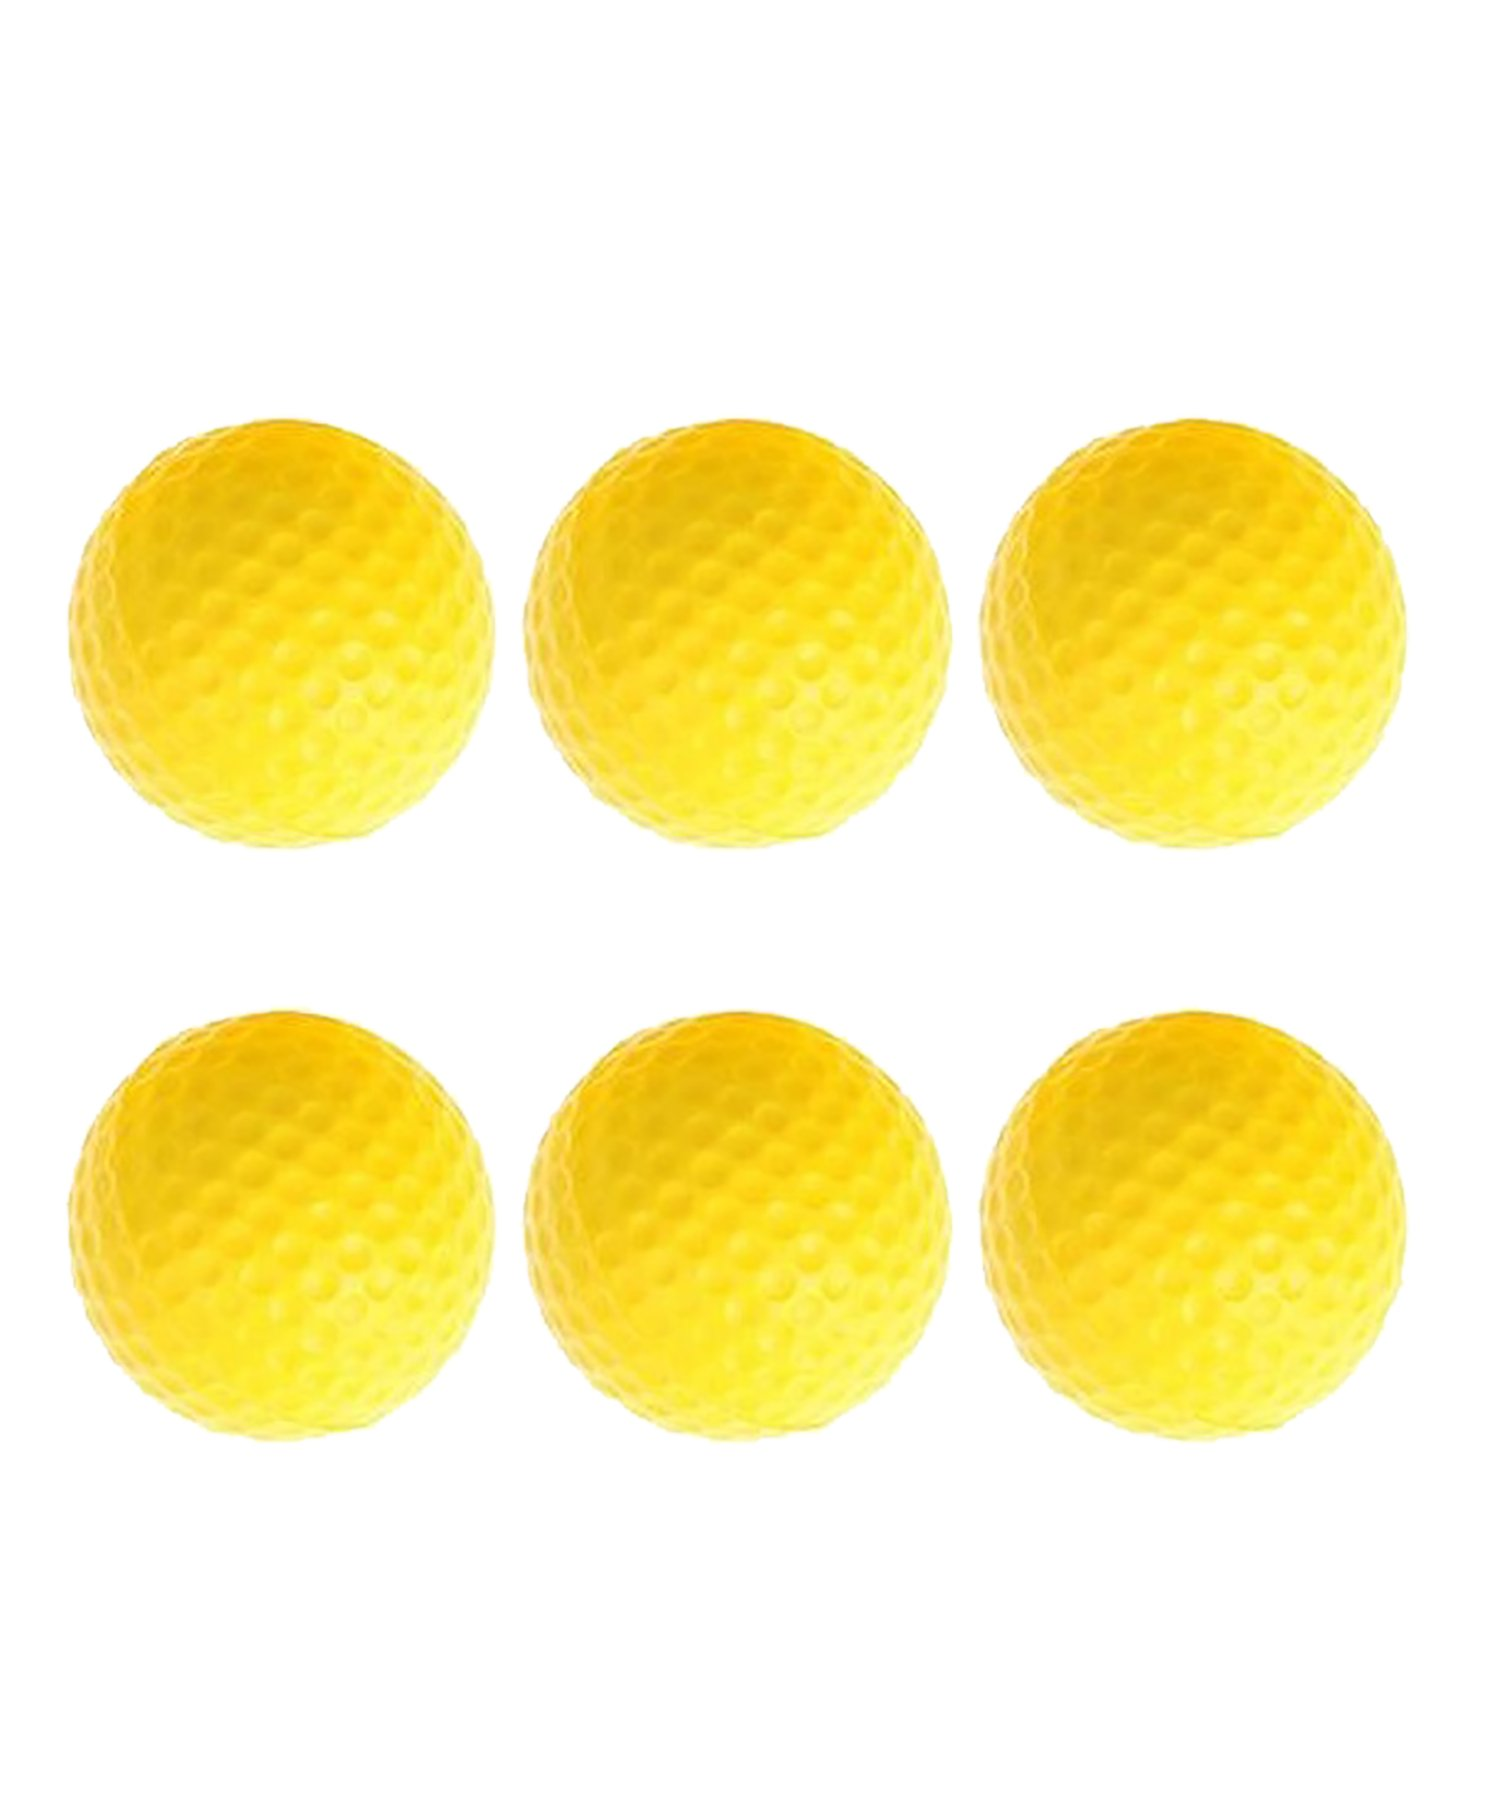 POSMA CN010A Portable Golf Training Chipping Net Bundle set with 1pc Hitting Aid Practice In/Outdoor Bag Hitting Nets + 2pcs Golf tour ball + 6pcs Golf PU ball by POSMA (Image #8)